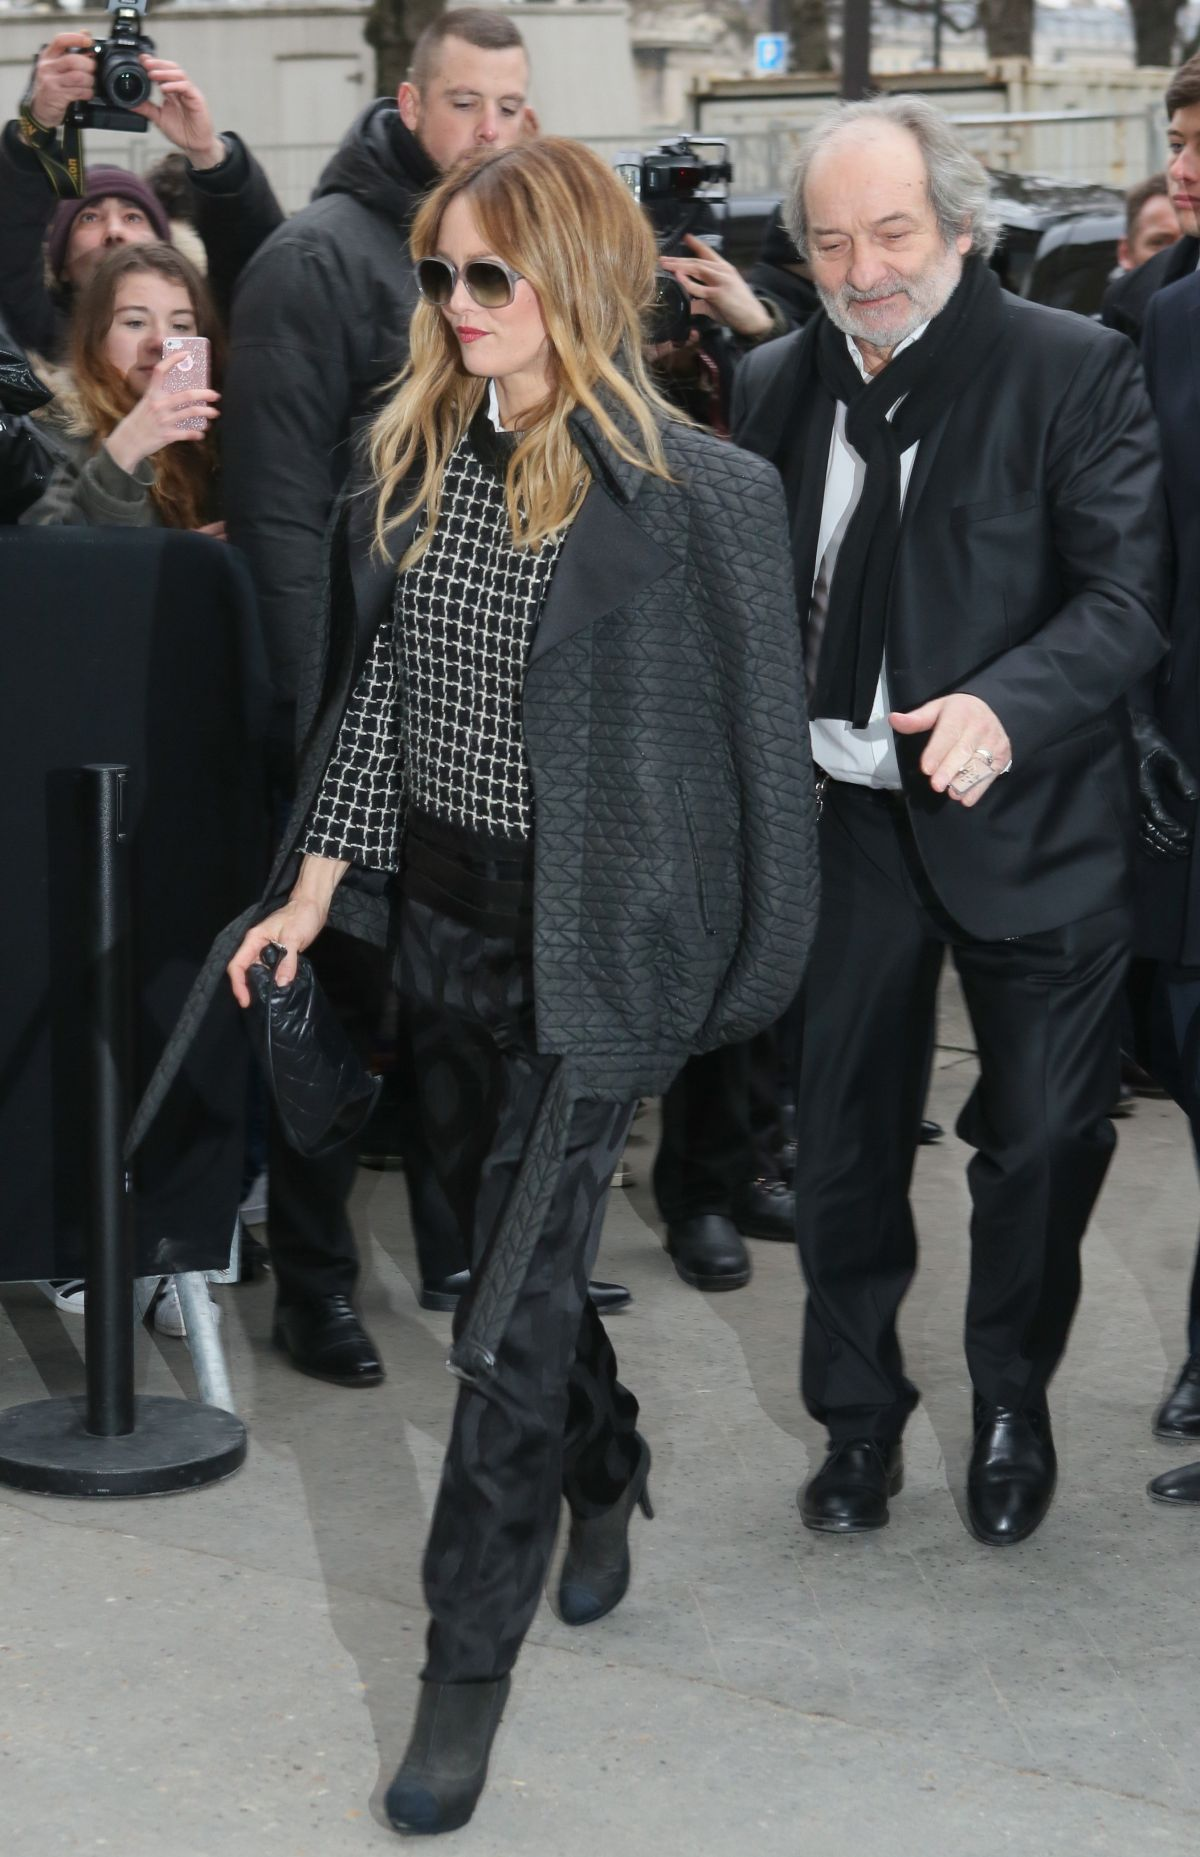 VANESSA PARADIS Arrives at 2nd Chanel Fashion Show at Paris Fashion Week 01/24/2017